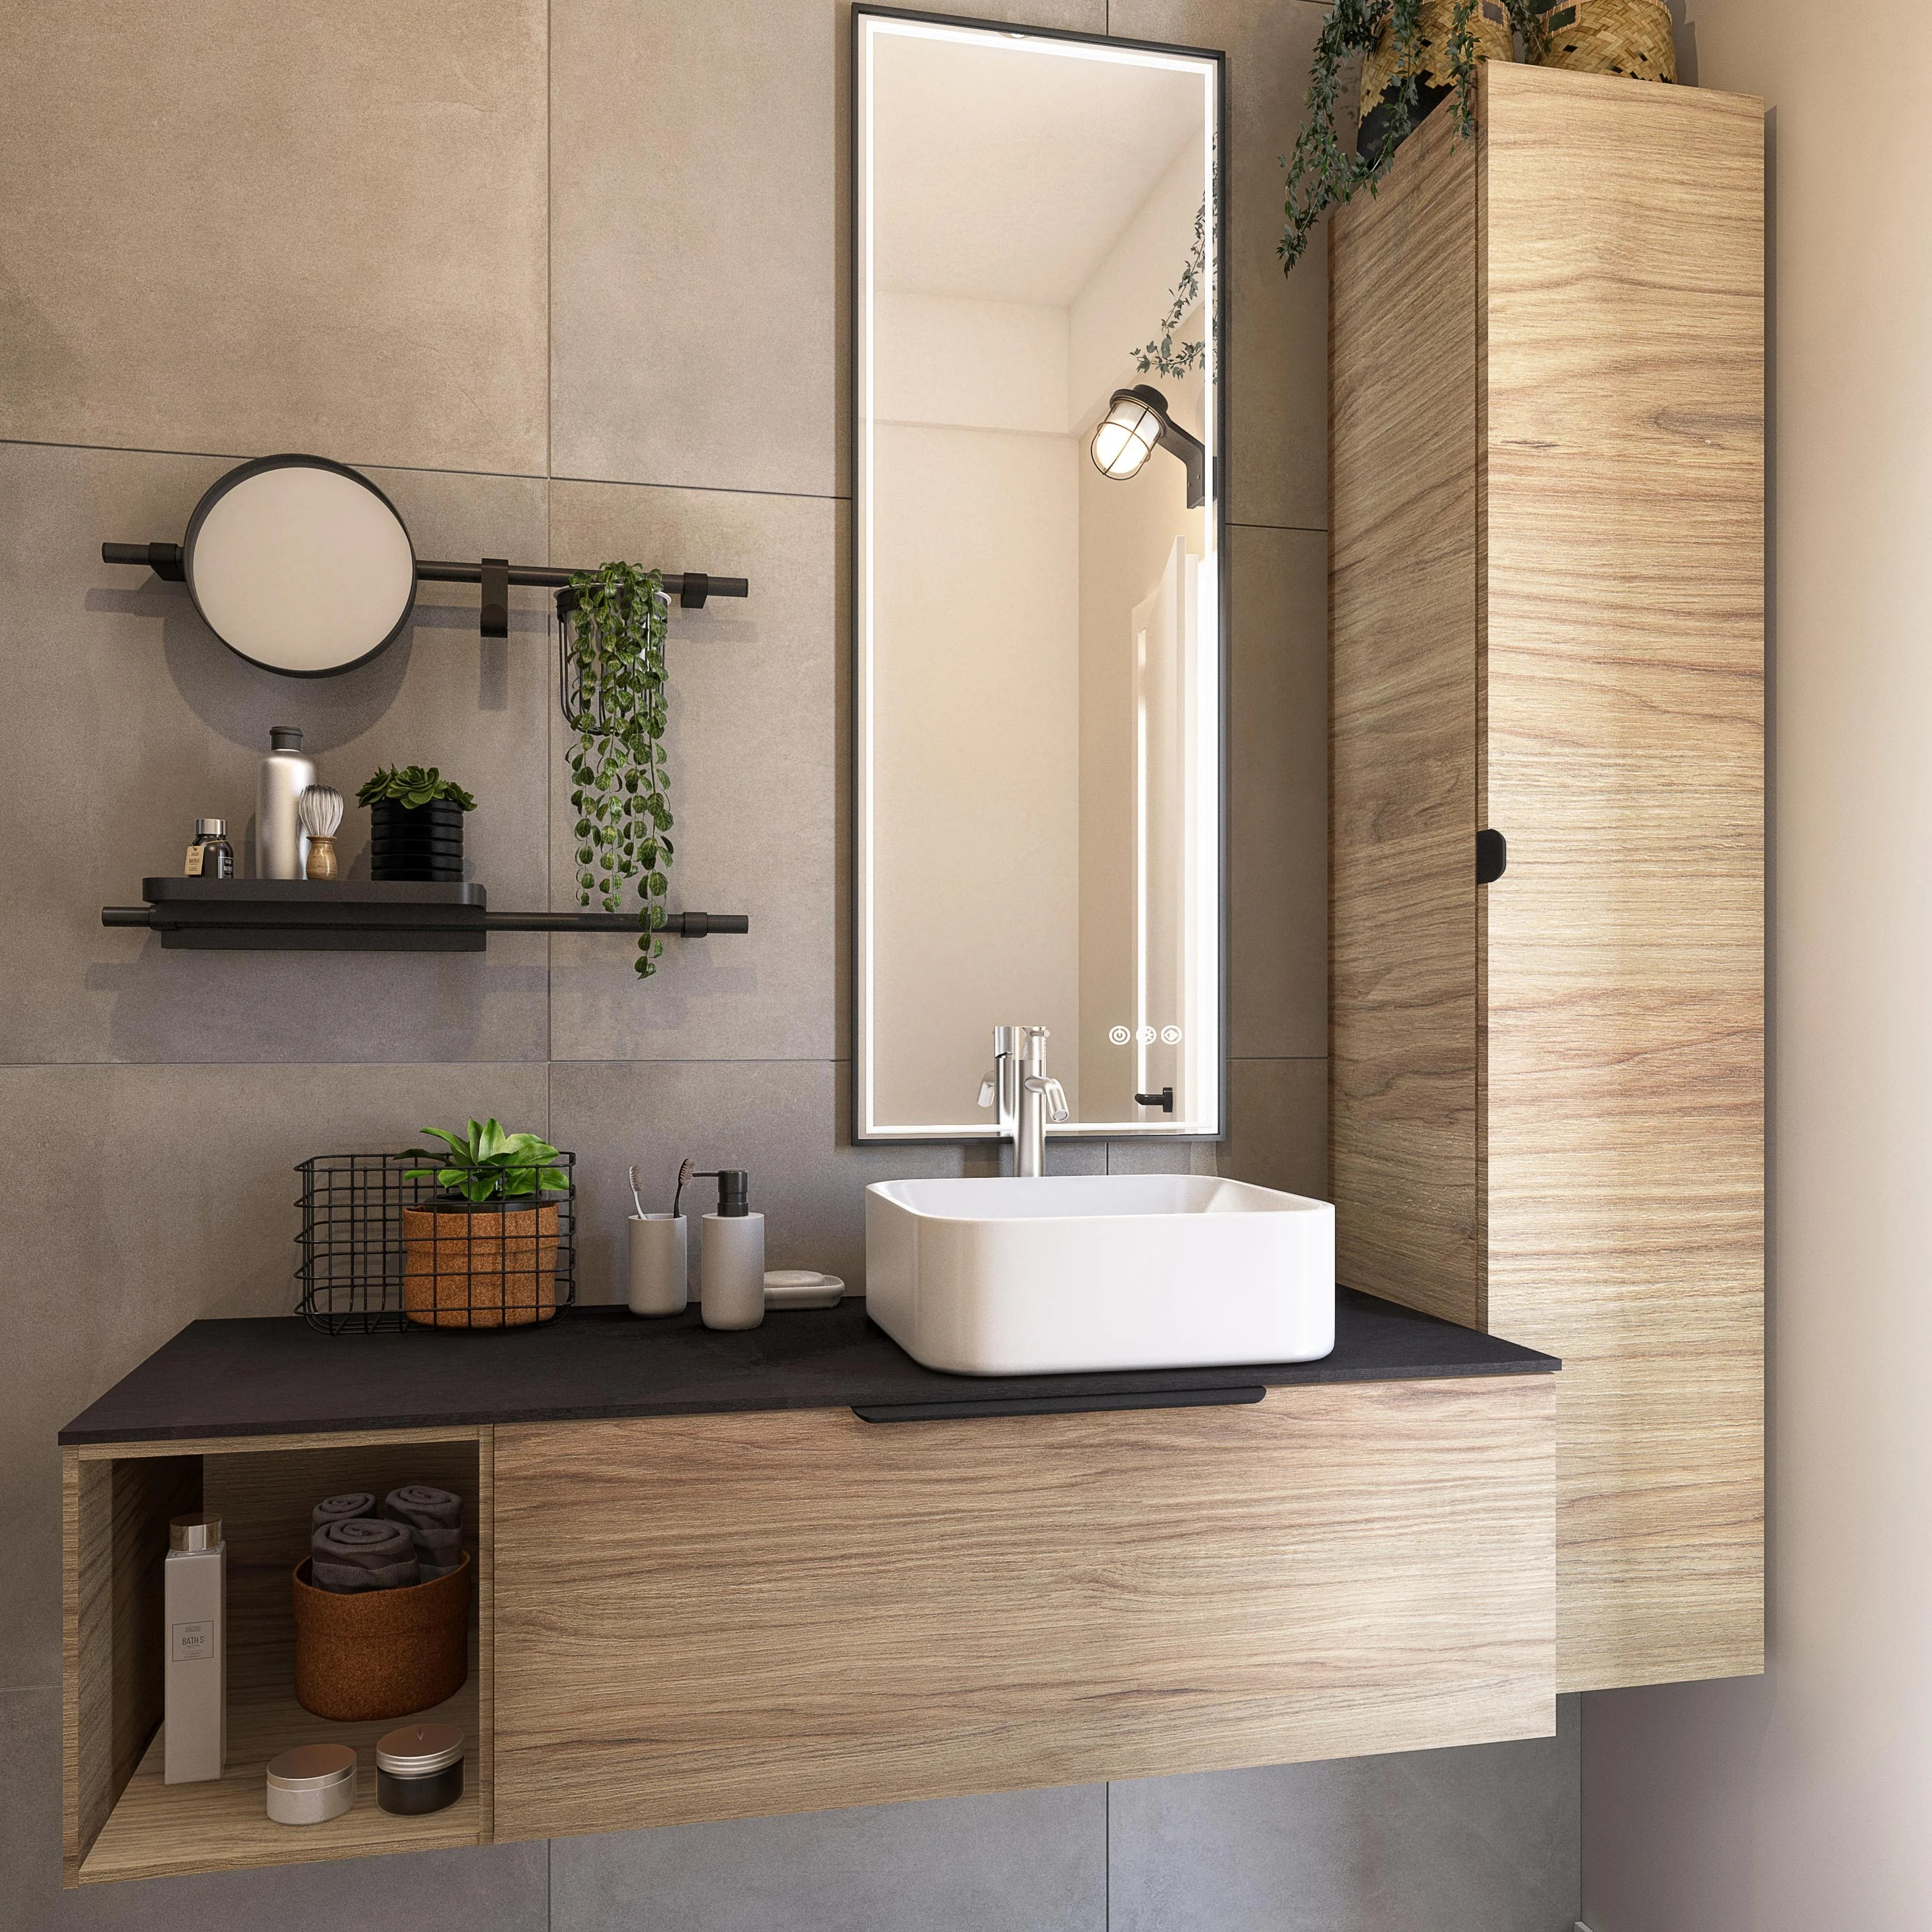 Photos Vasque De Meuble De Salle De Bain Concept Neo Full Version Hd Quality Concept Neo Maison Design Paris Blason Louis Fr